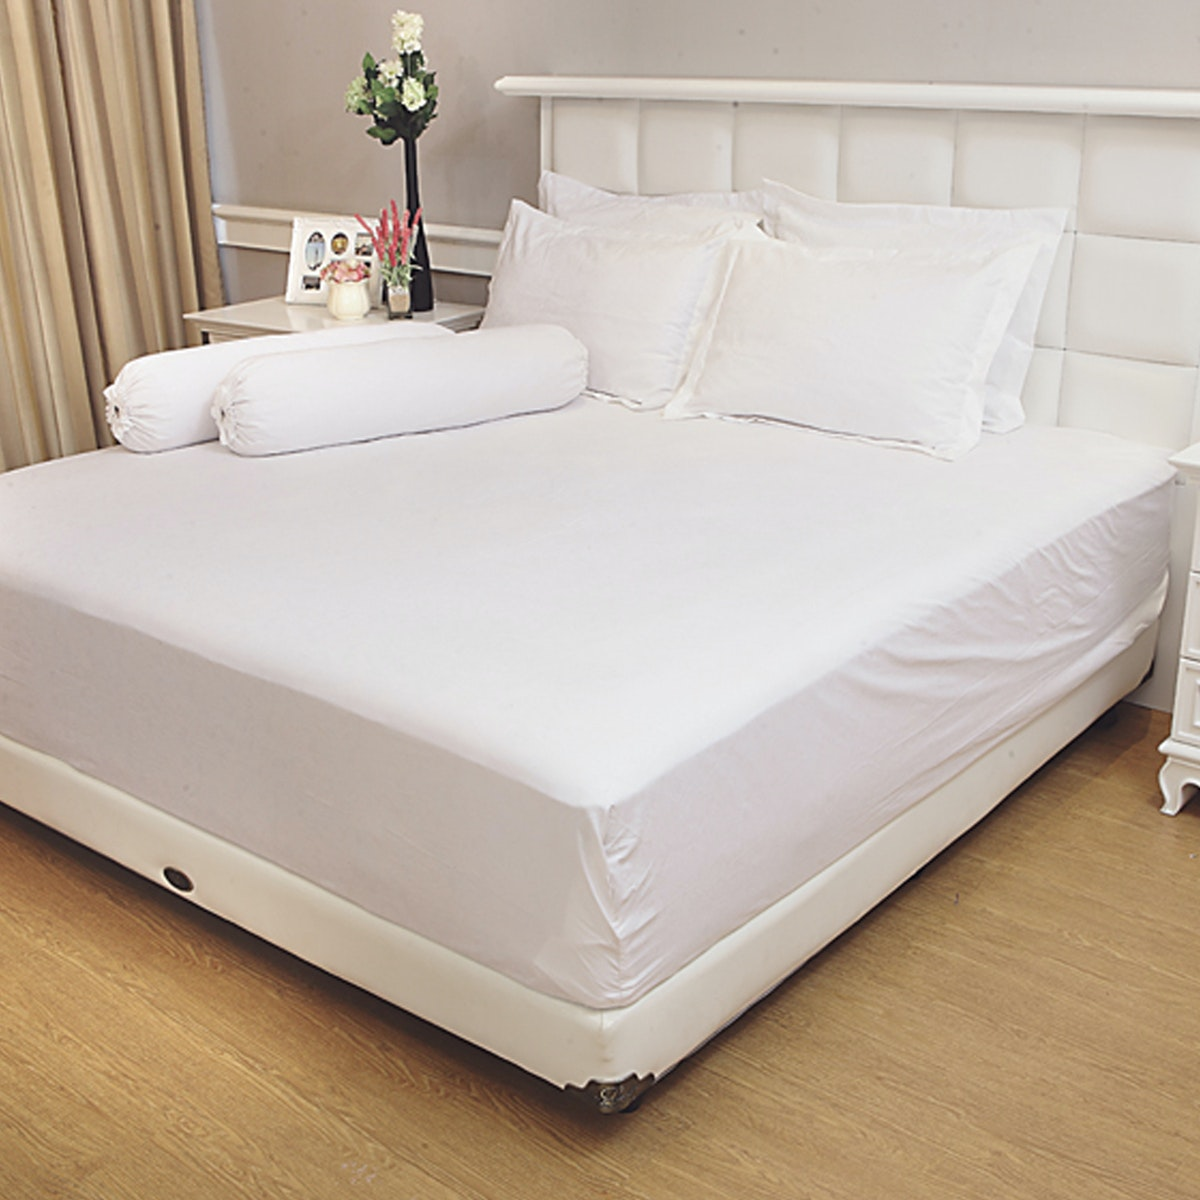 Vallery Quincy Set Sprei Jacquard - White 160x200x30cm